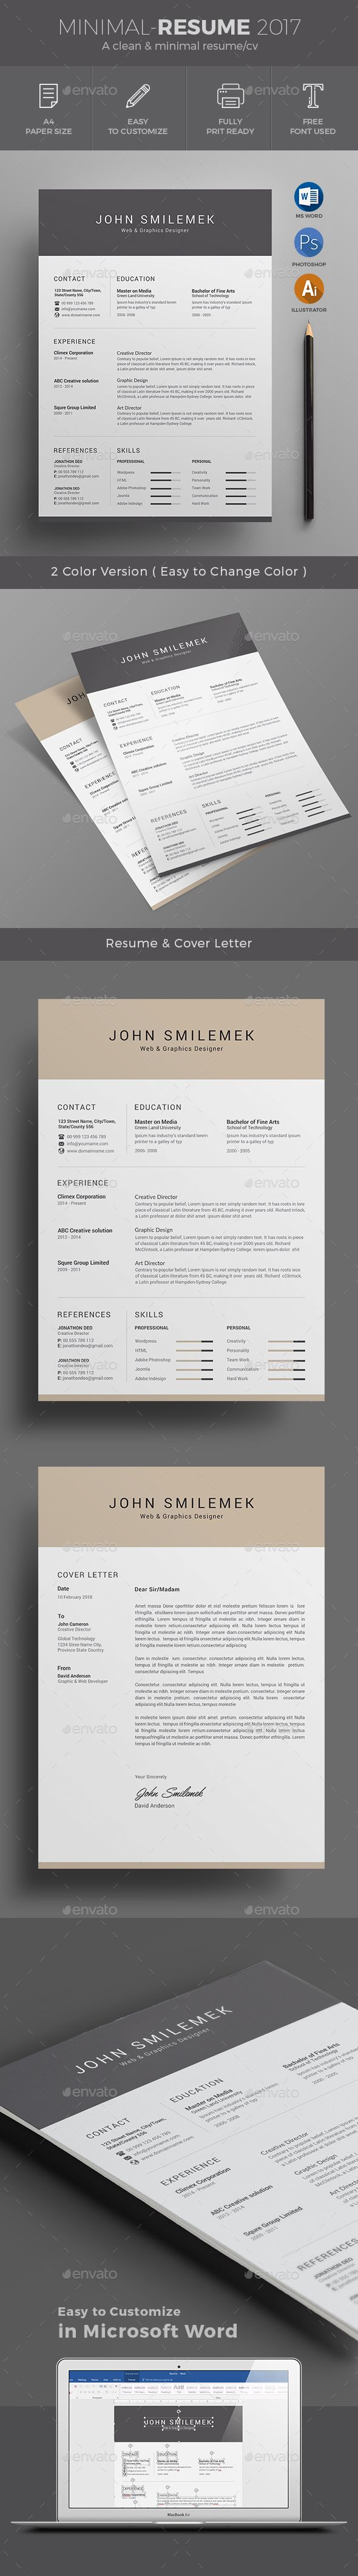 best ideas about professional resume template 17 best ideas about professional resume template resume templates resume and resume design